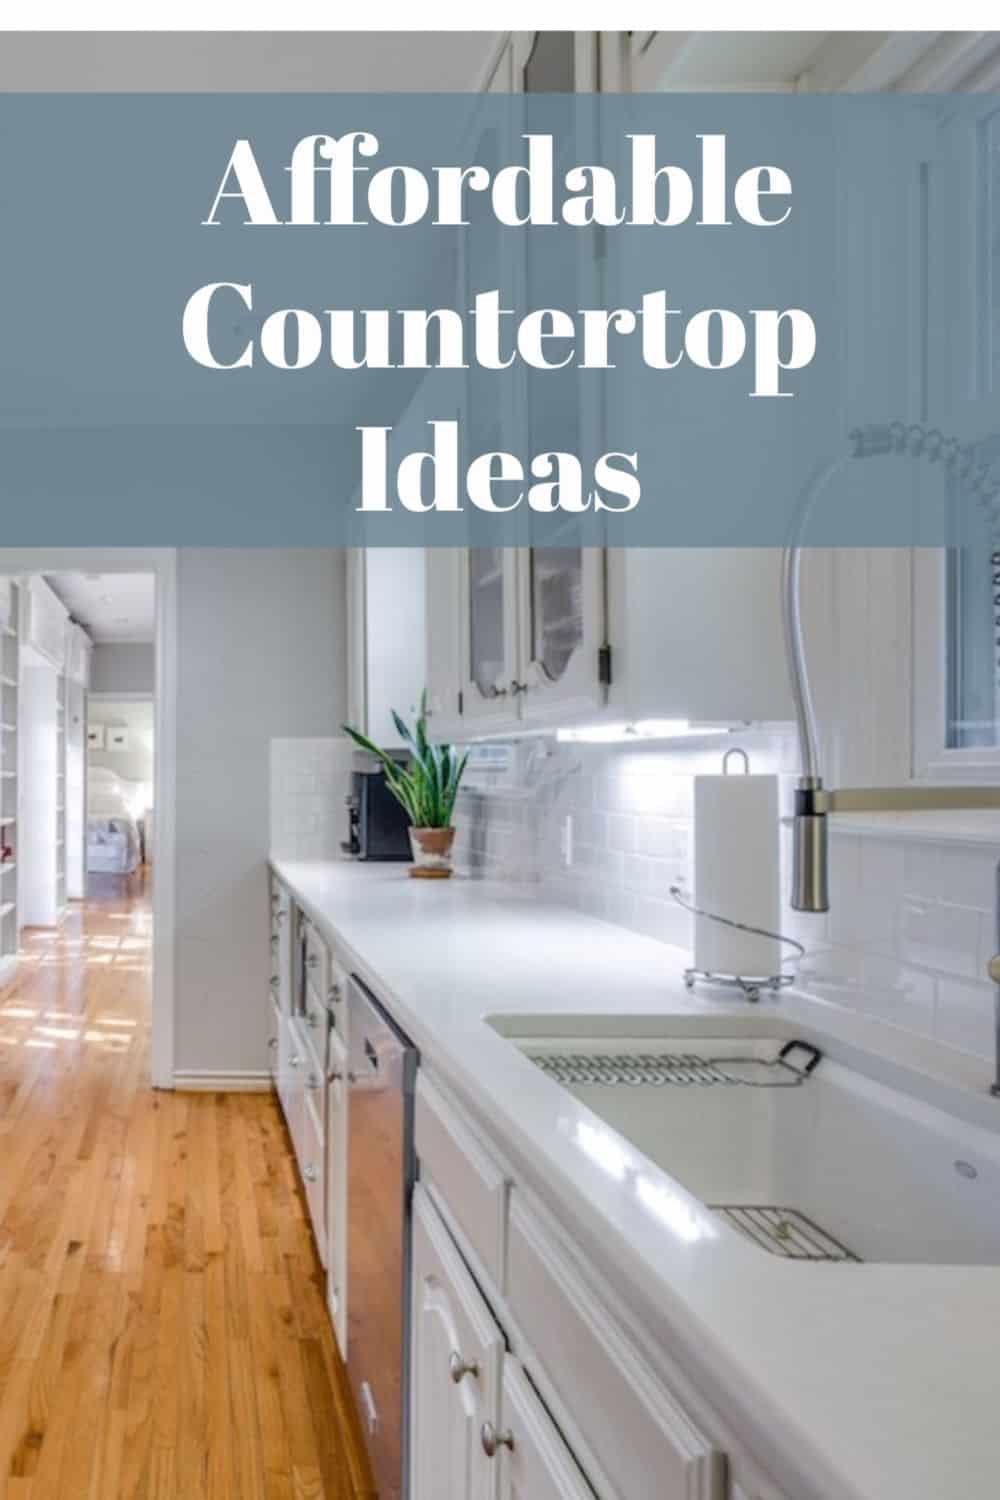 Affordable countertop ideas